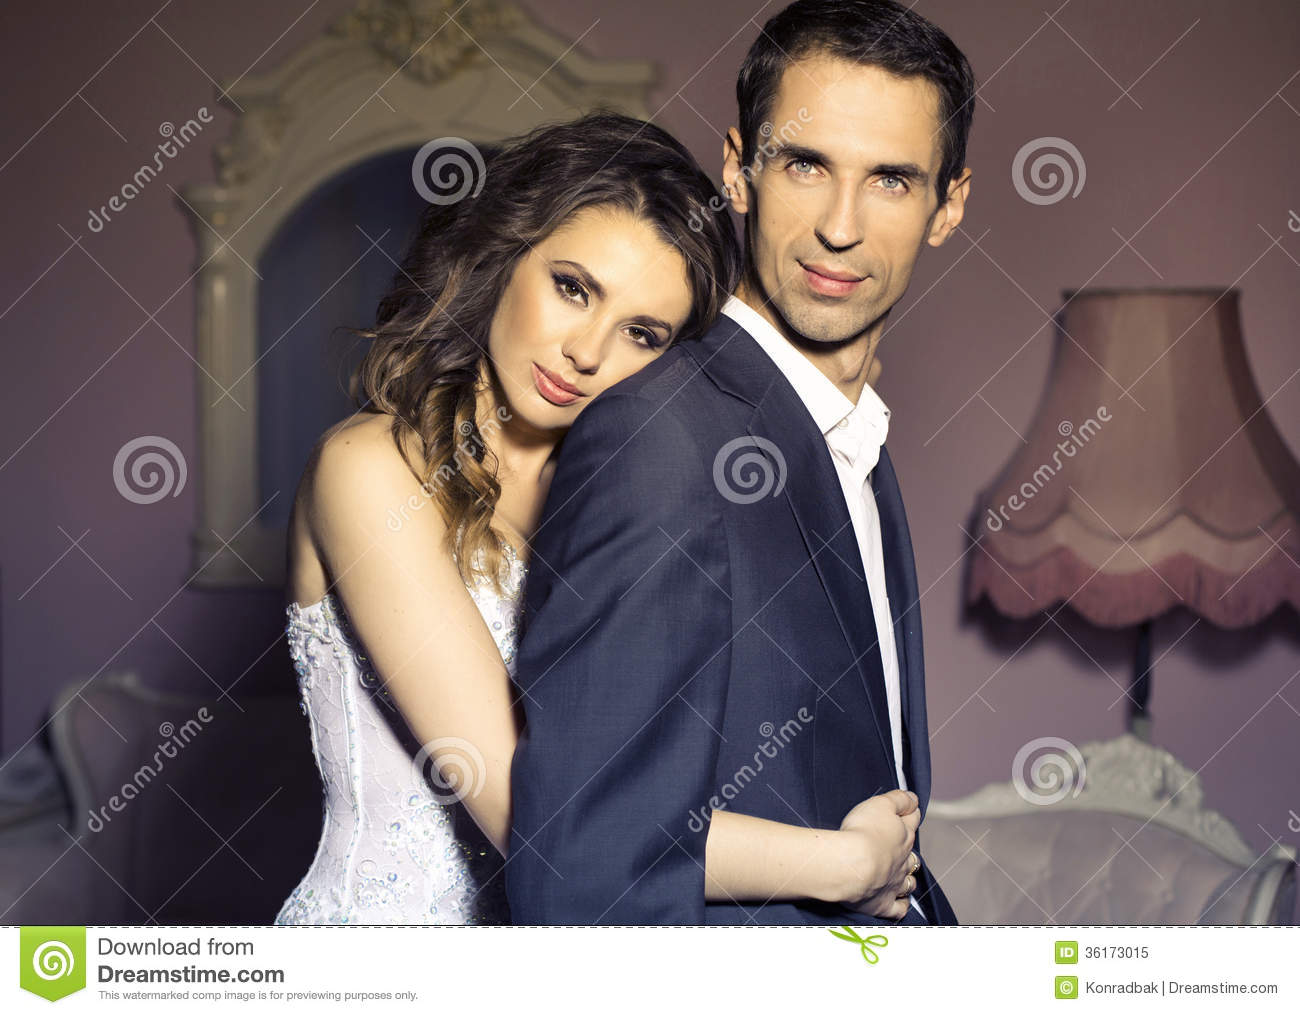 Serious Wedding Couple In Romantic Pose Stock Image Image Of